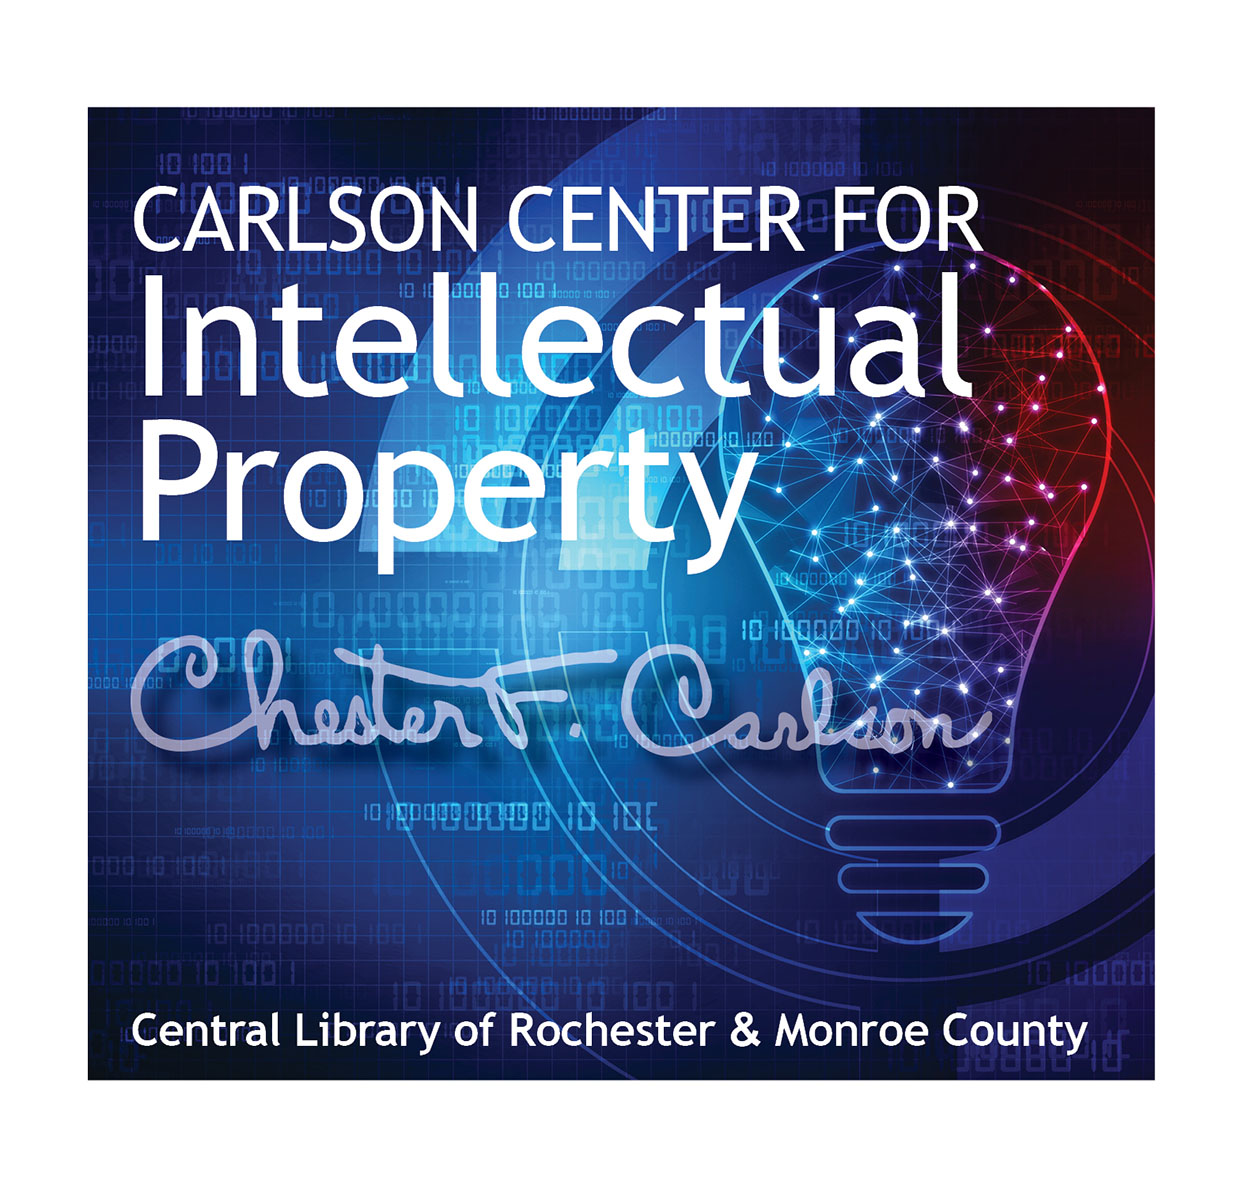 Intellectual Property Expo